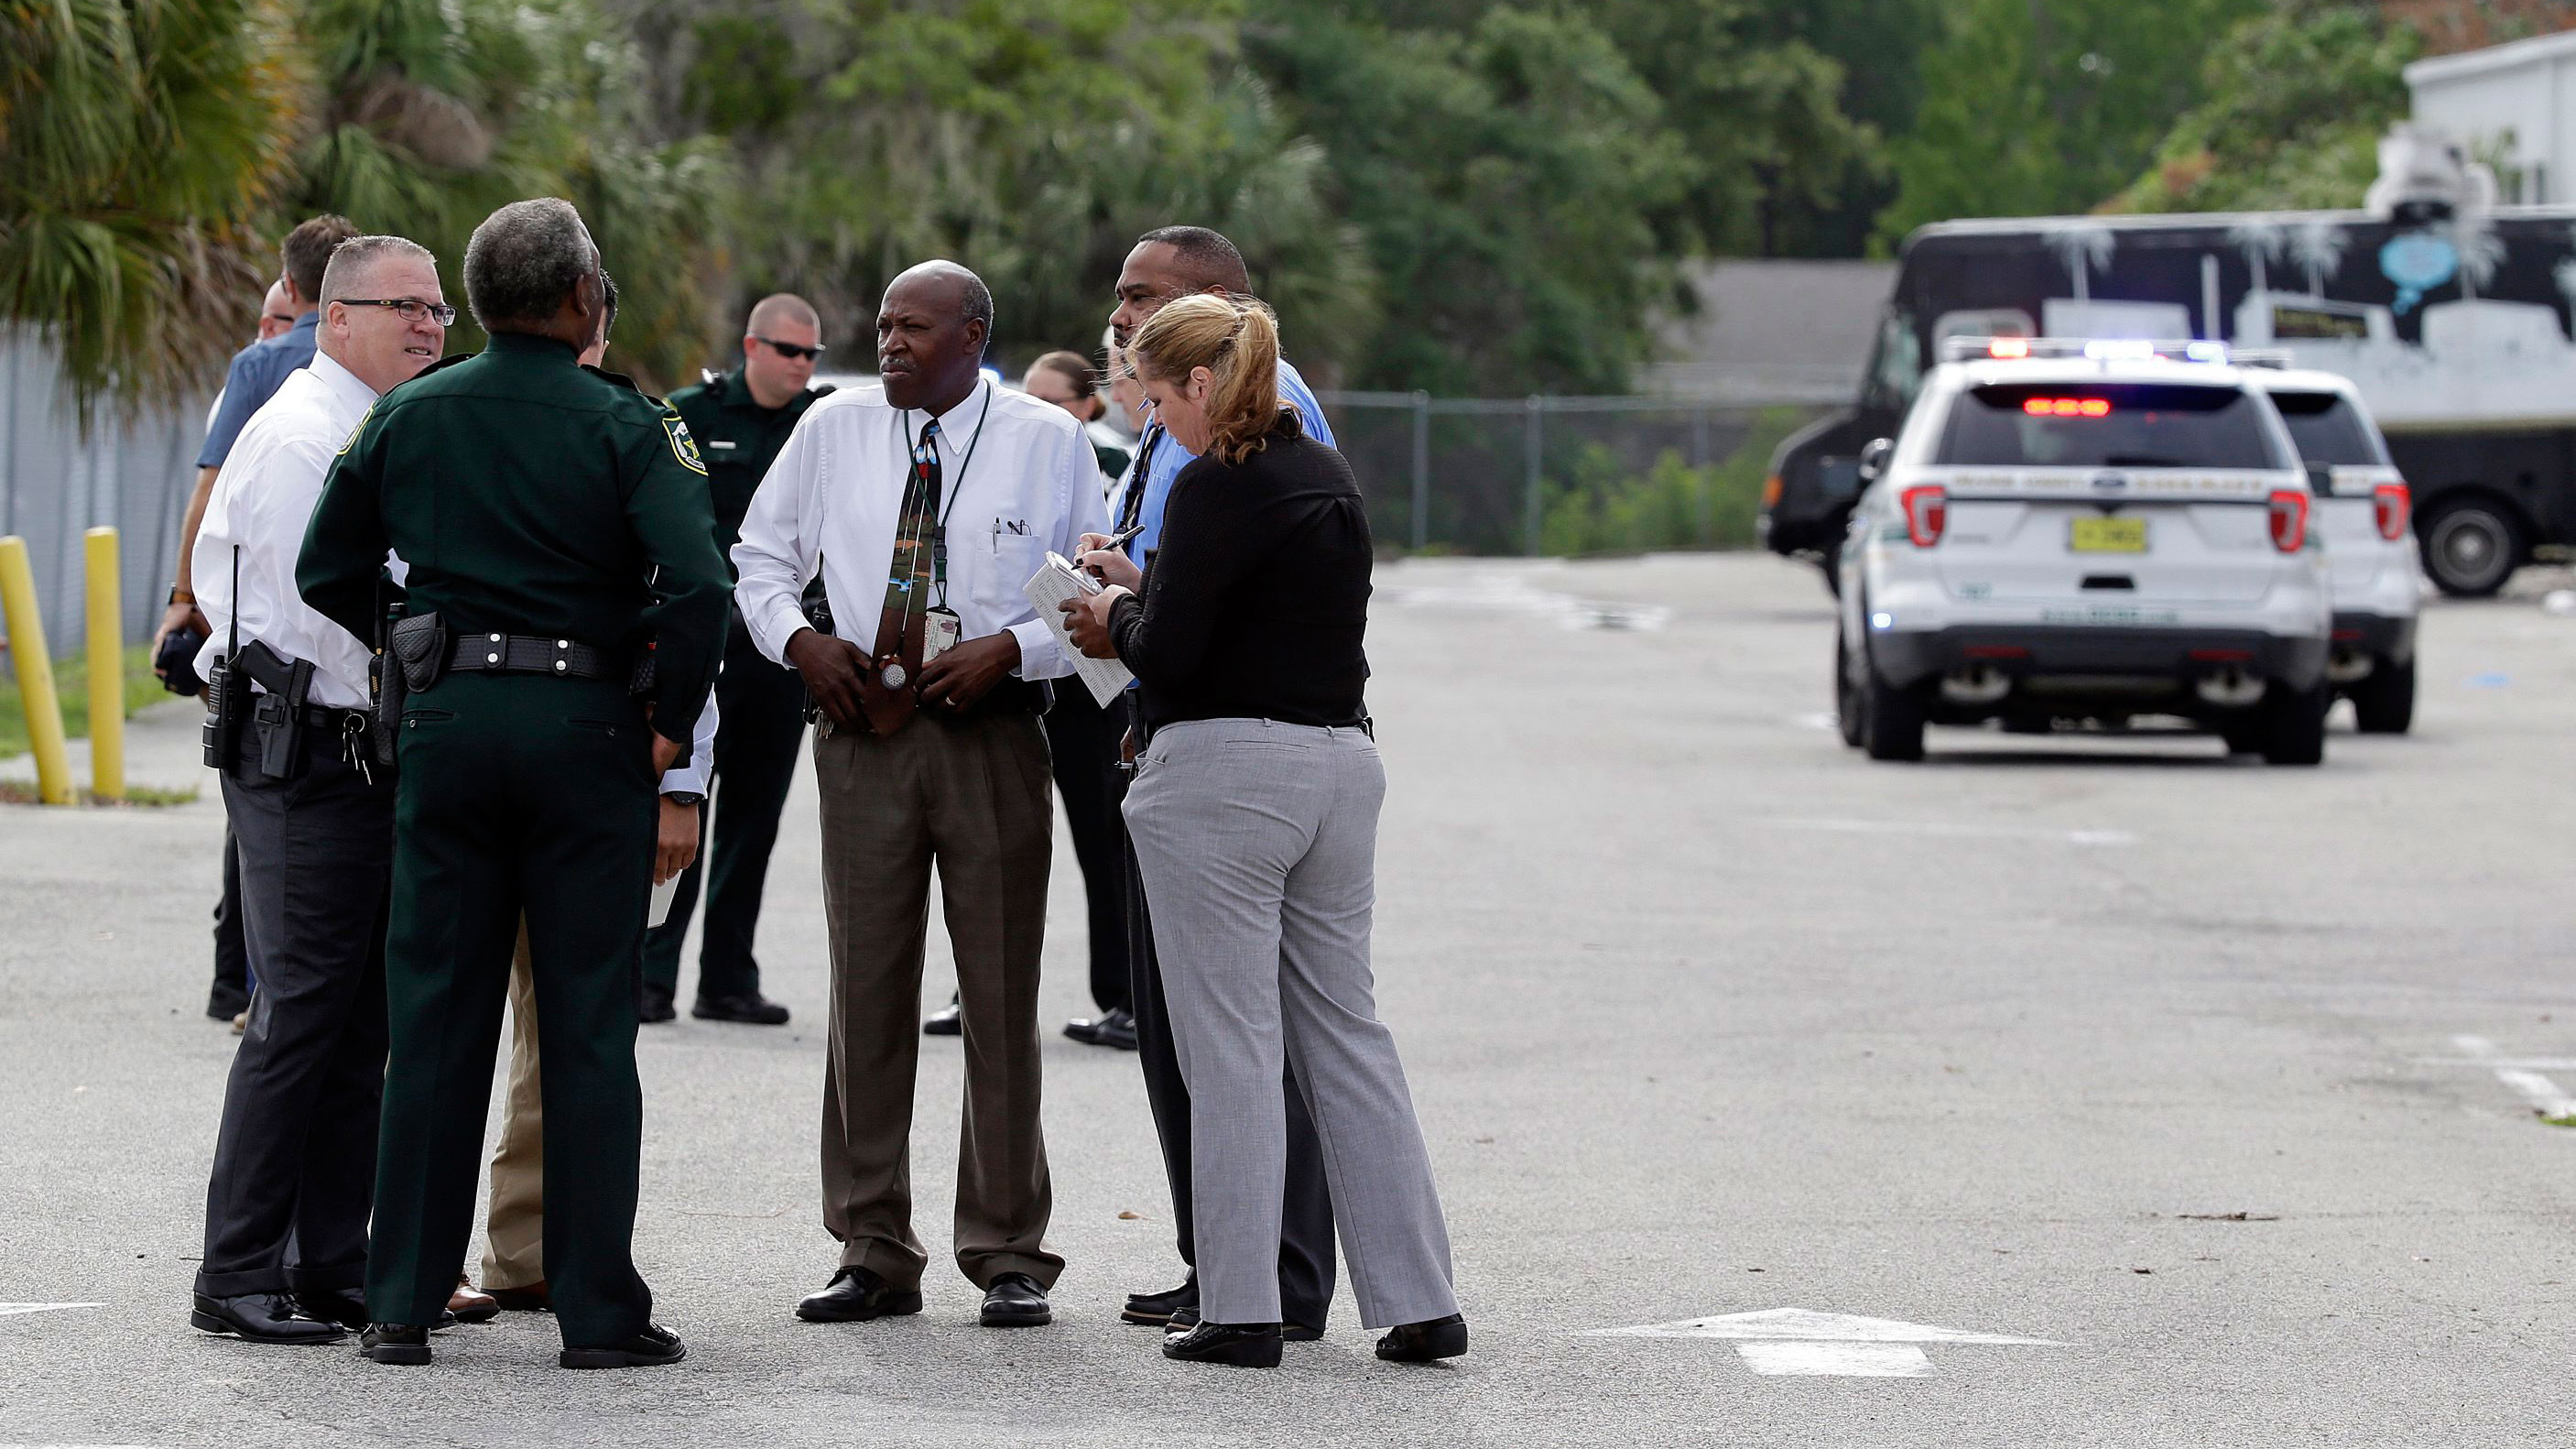 Multiple fatalities in Florida workplace shooting - sheriff